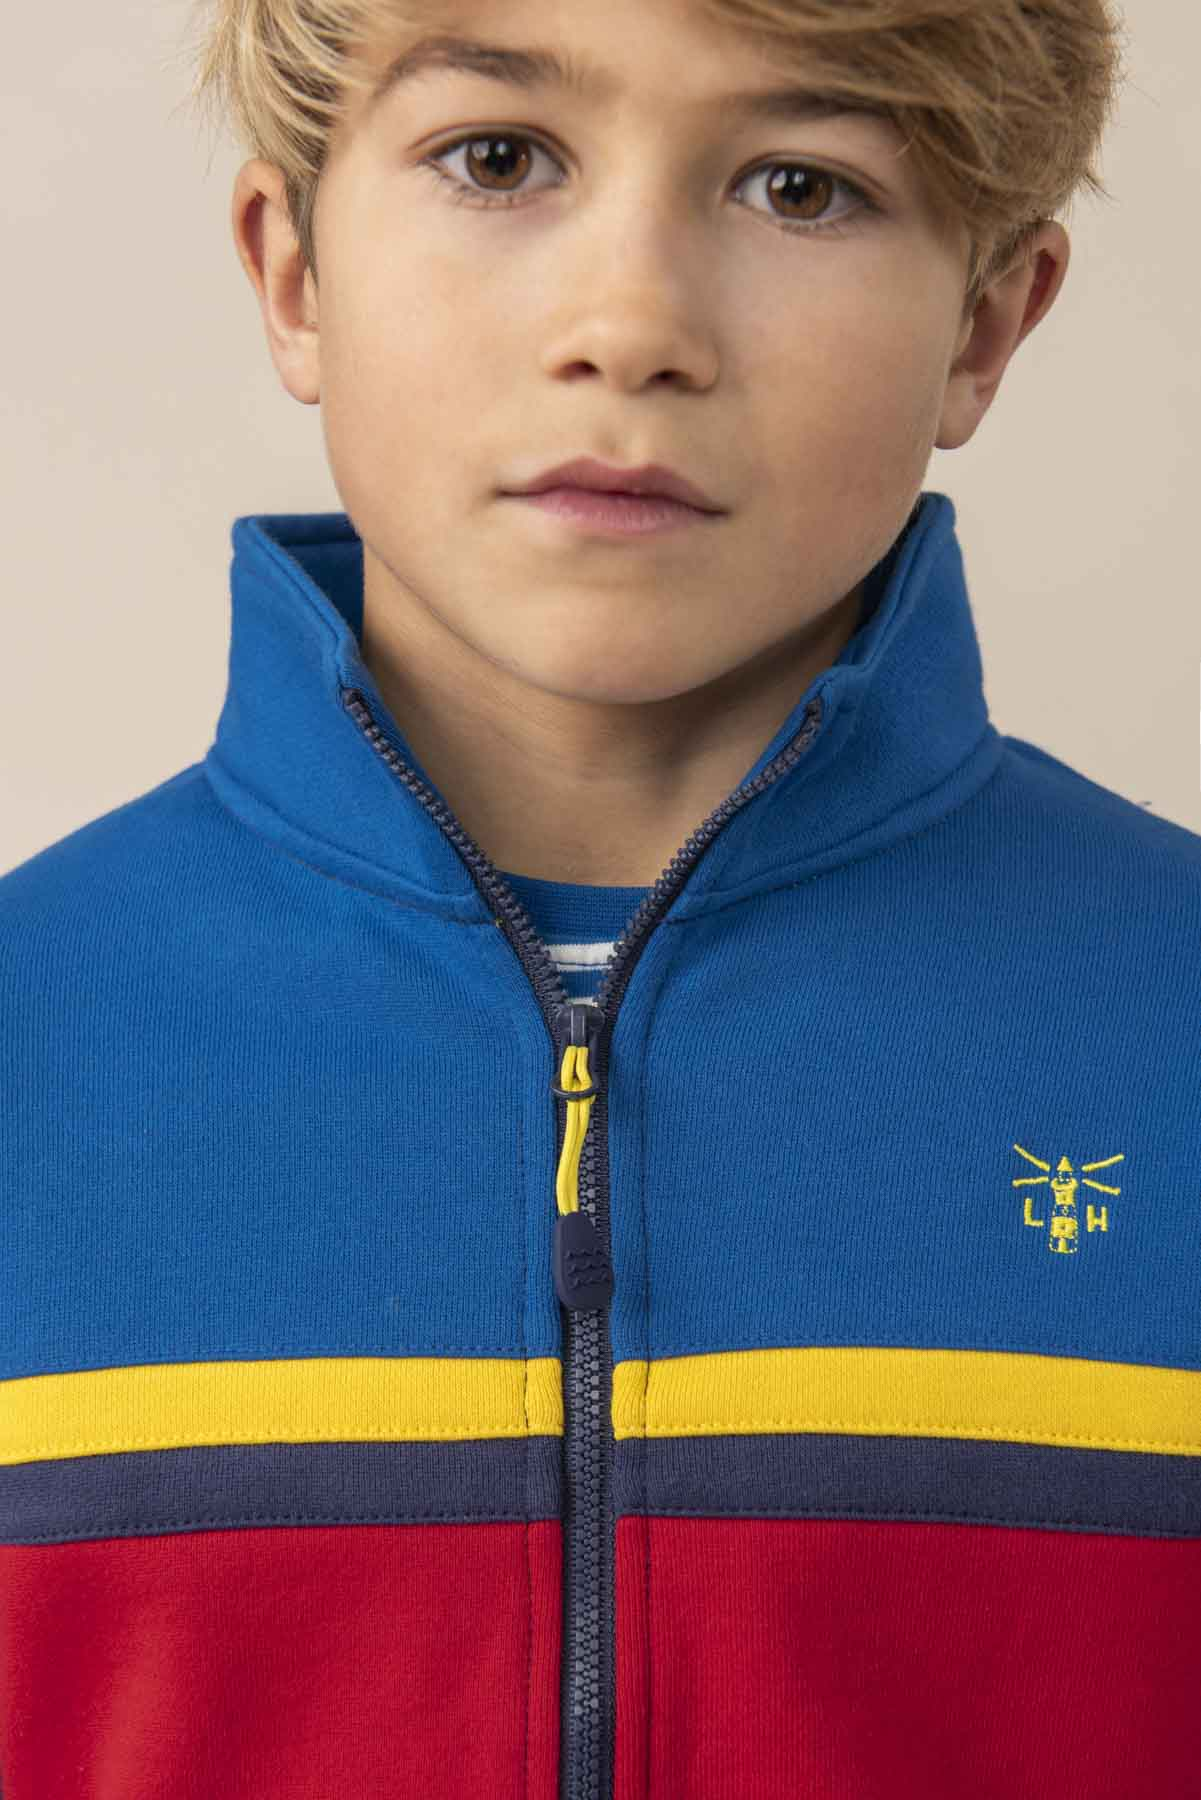 Boy's Tops - Zach - Blue Full Zip Top